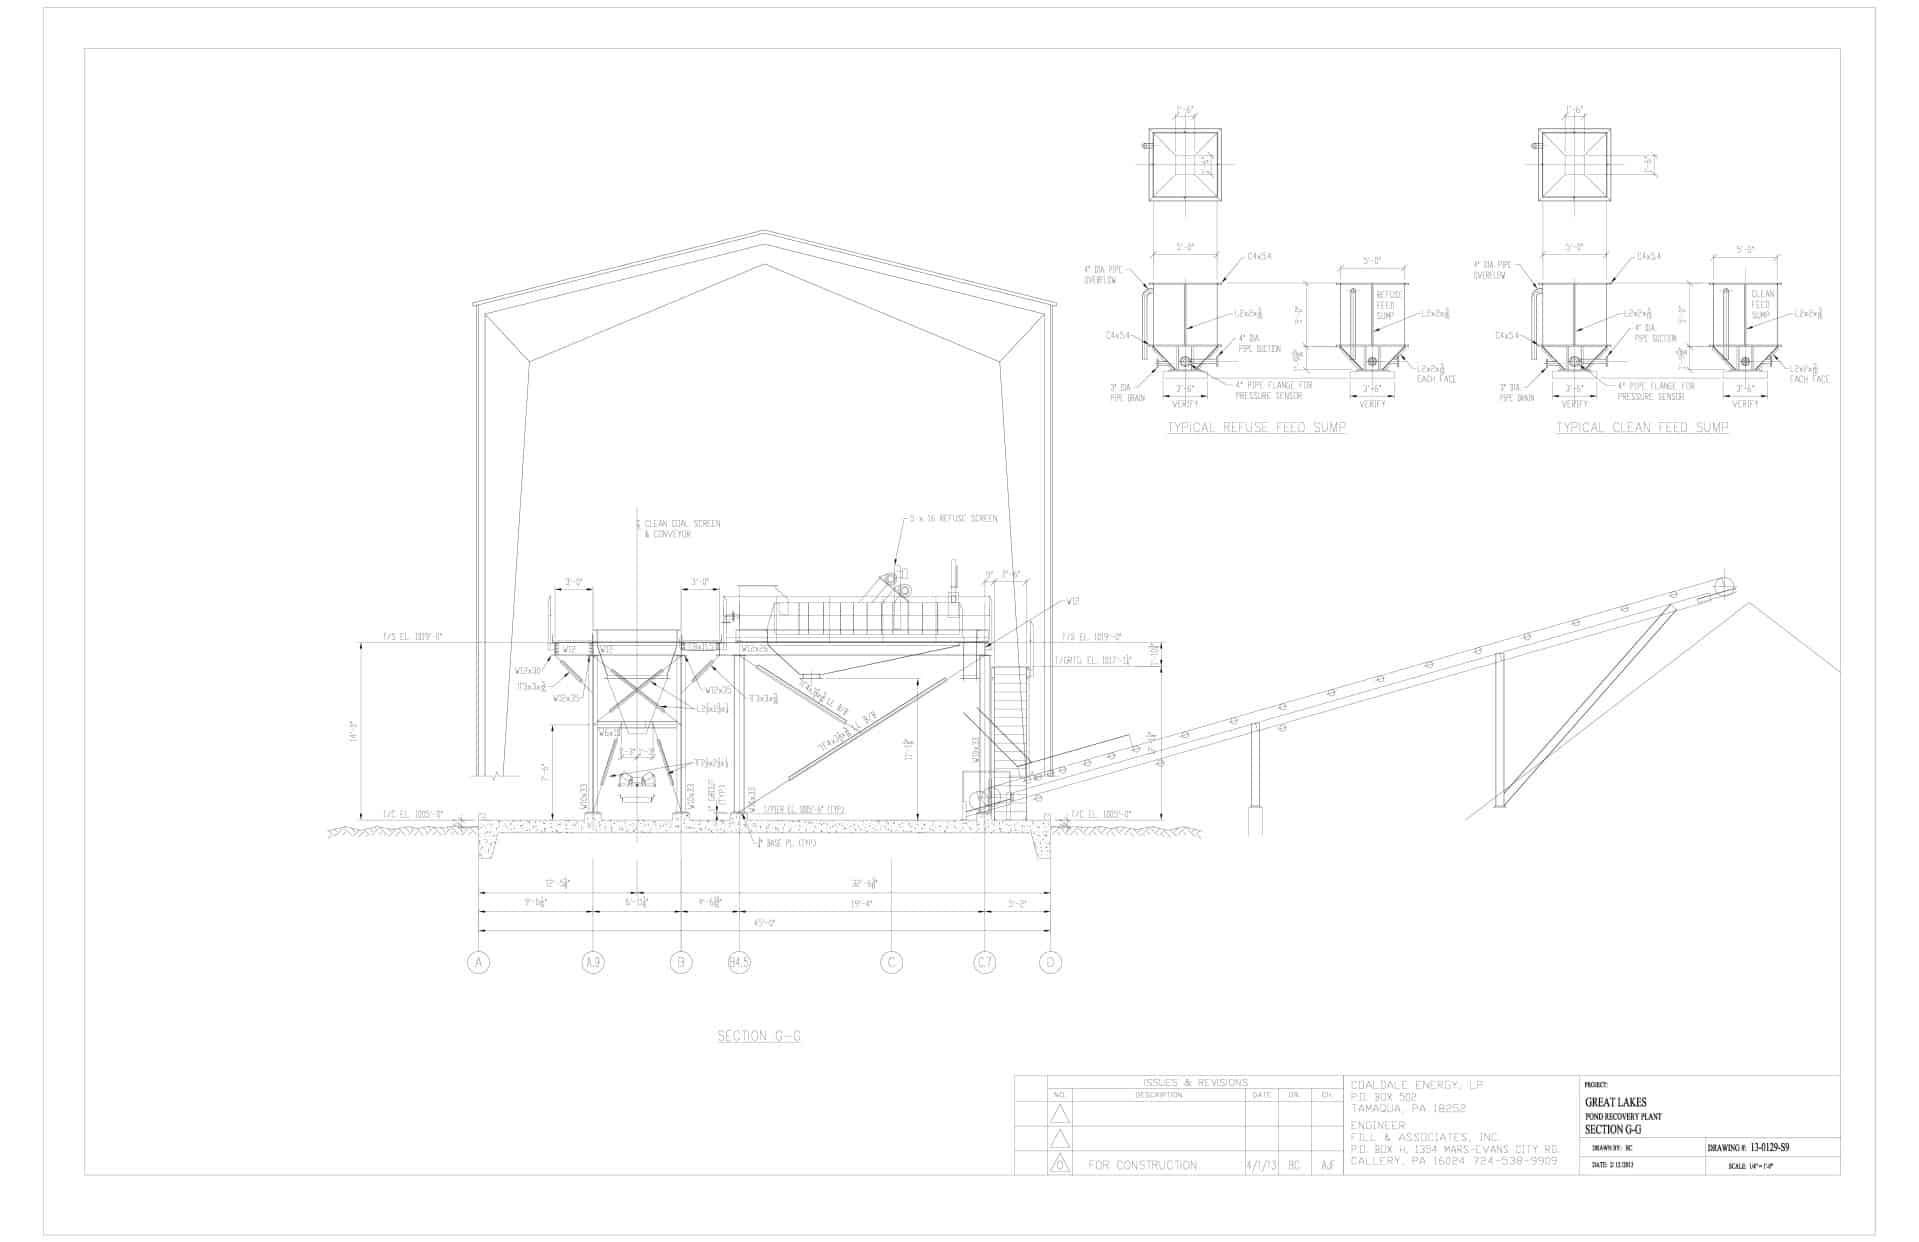 hight resolution of architectural drawings archives emerald machine fabrication architectural drawings and diagrams photo album diagrams